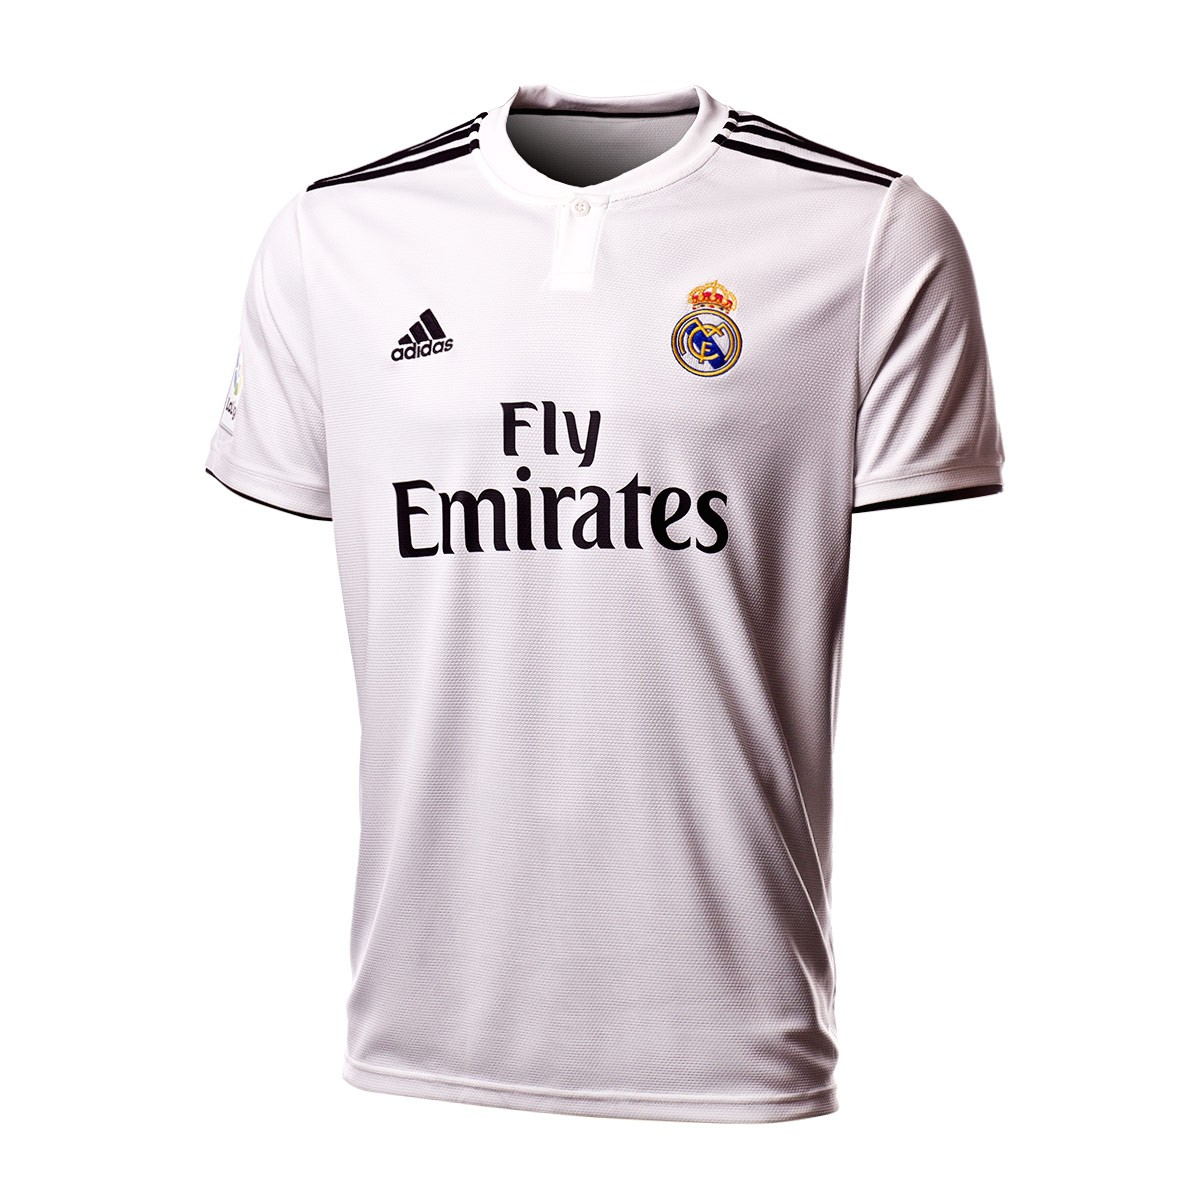 003fd2d97 Jersey adidas Real Madrid LFP 2018-2019 Home White-black - Tienda de fútbol  Fútbol Emotion